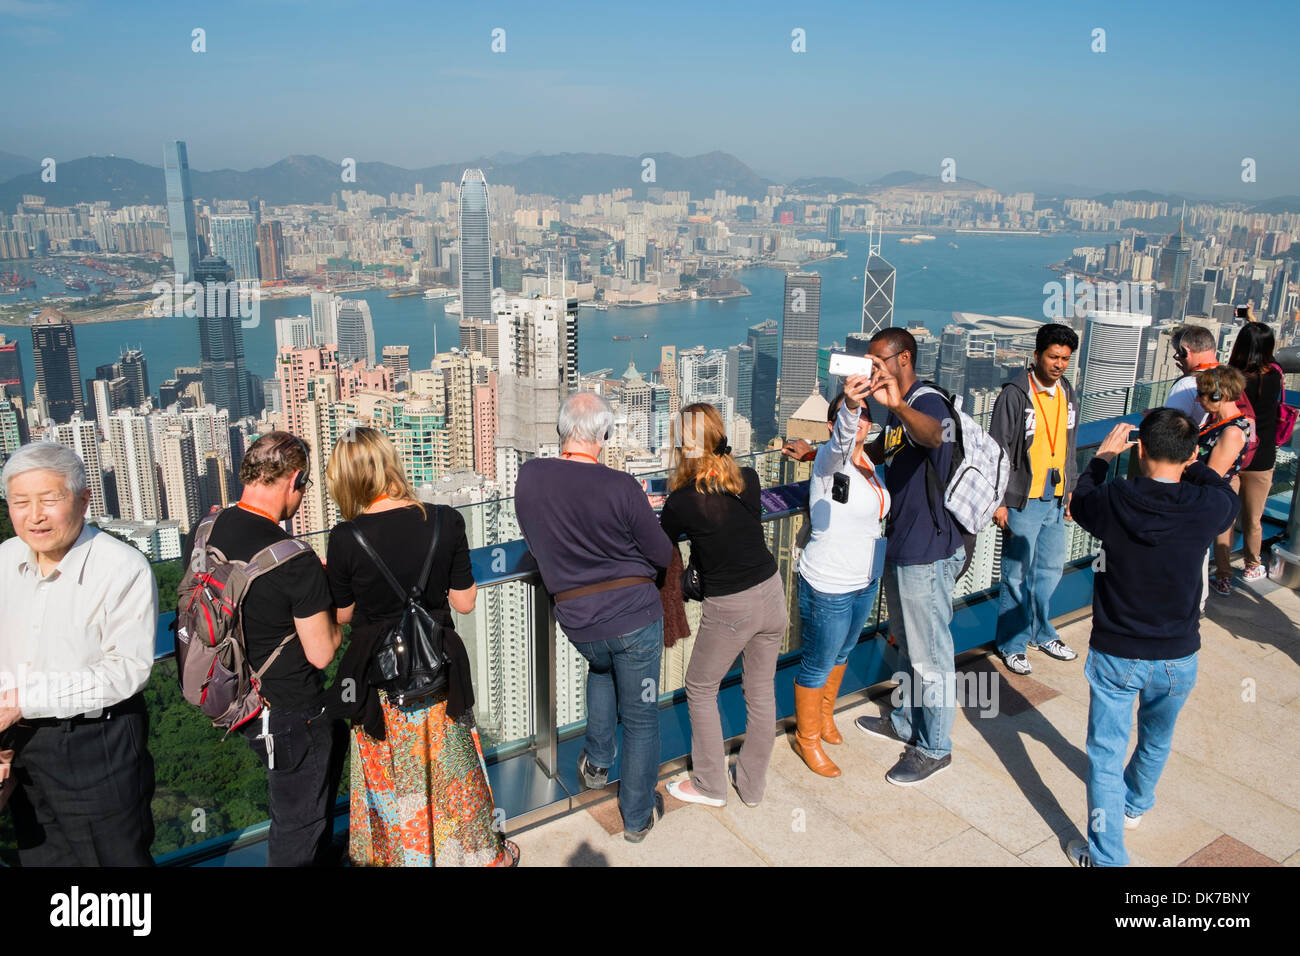 Tourists admiring view of skyline of Hong Kong from The Peak - Stock Image